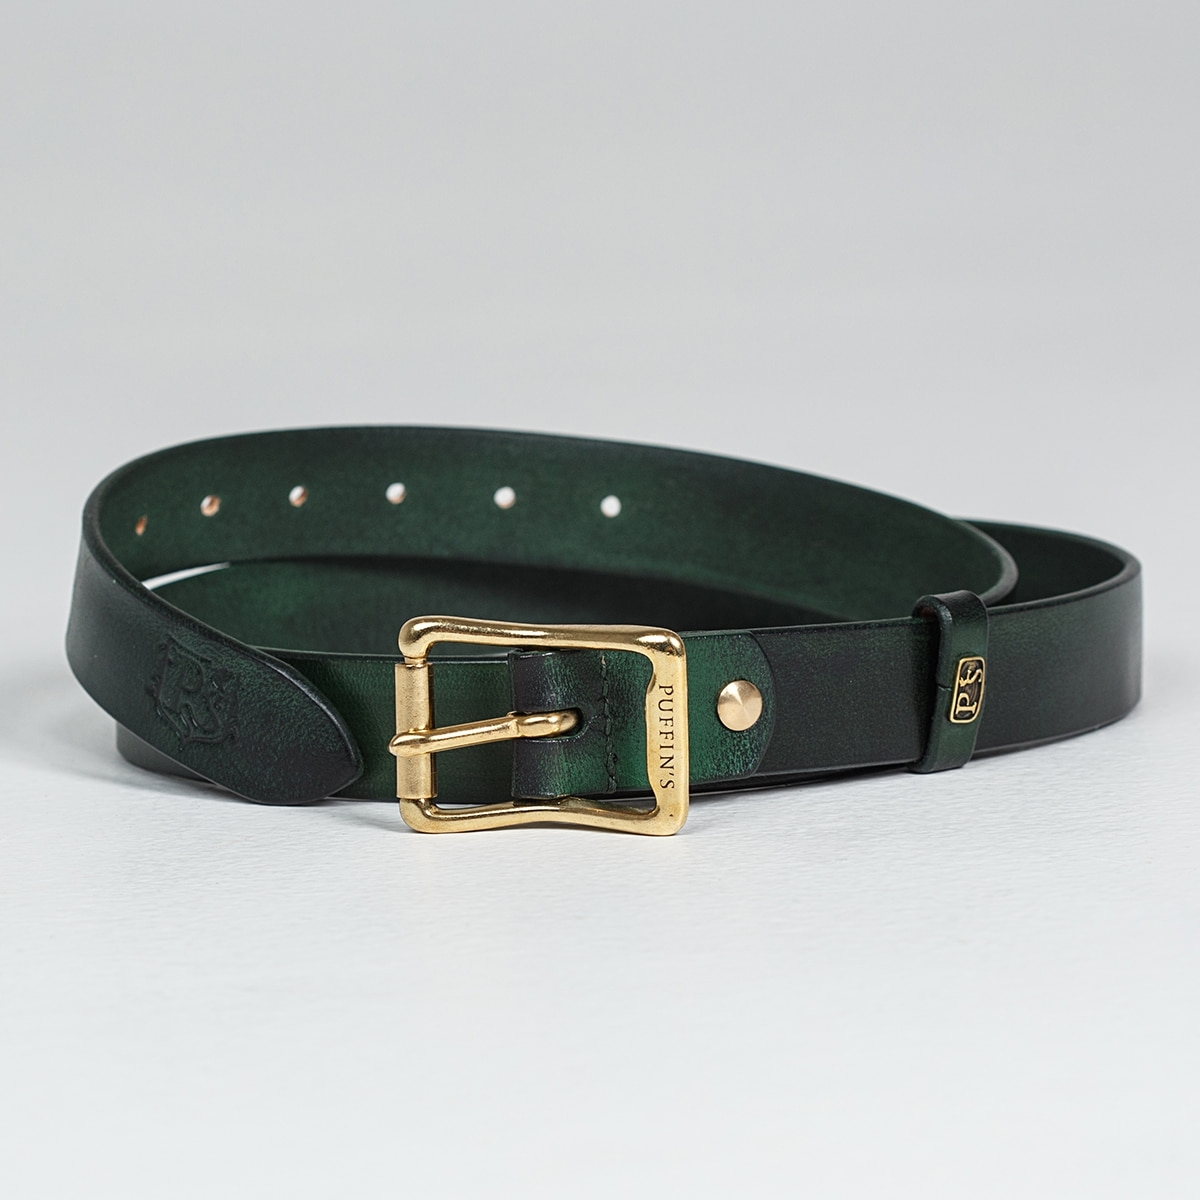 Exquisite belt with roller brass buckle 30mm grassy green